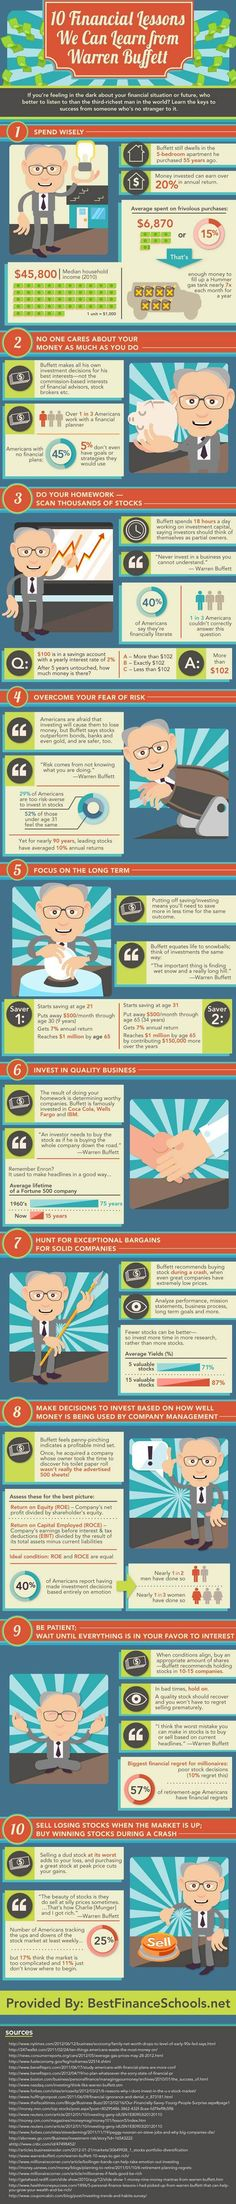 10 #Finance Lessons We Can Learn from #WarrenBuffett #infographic